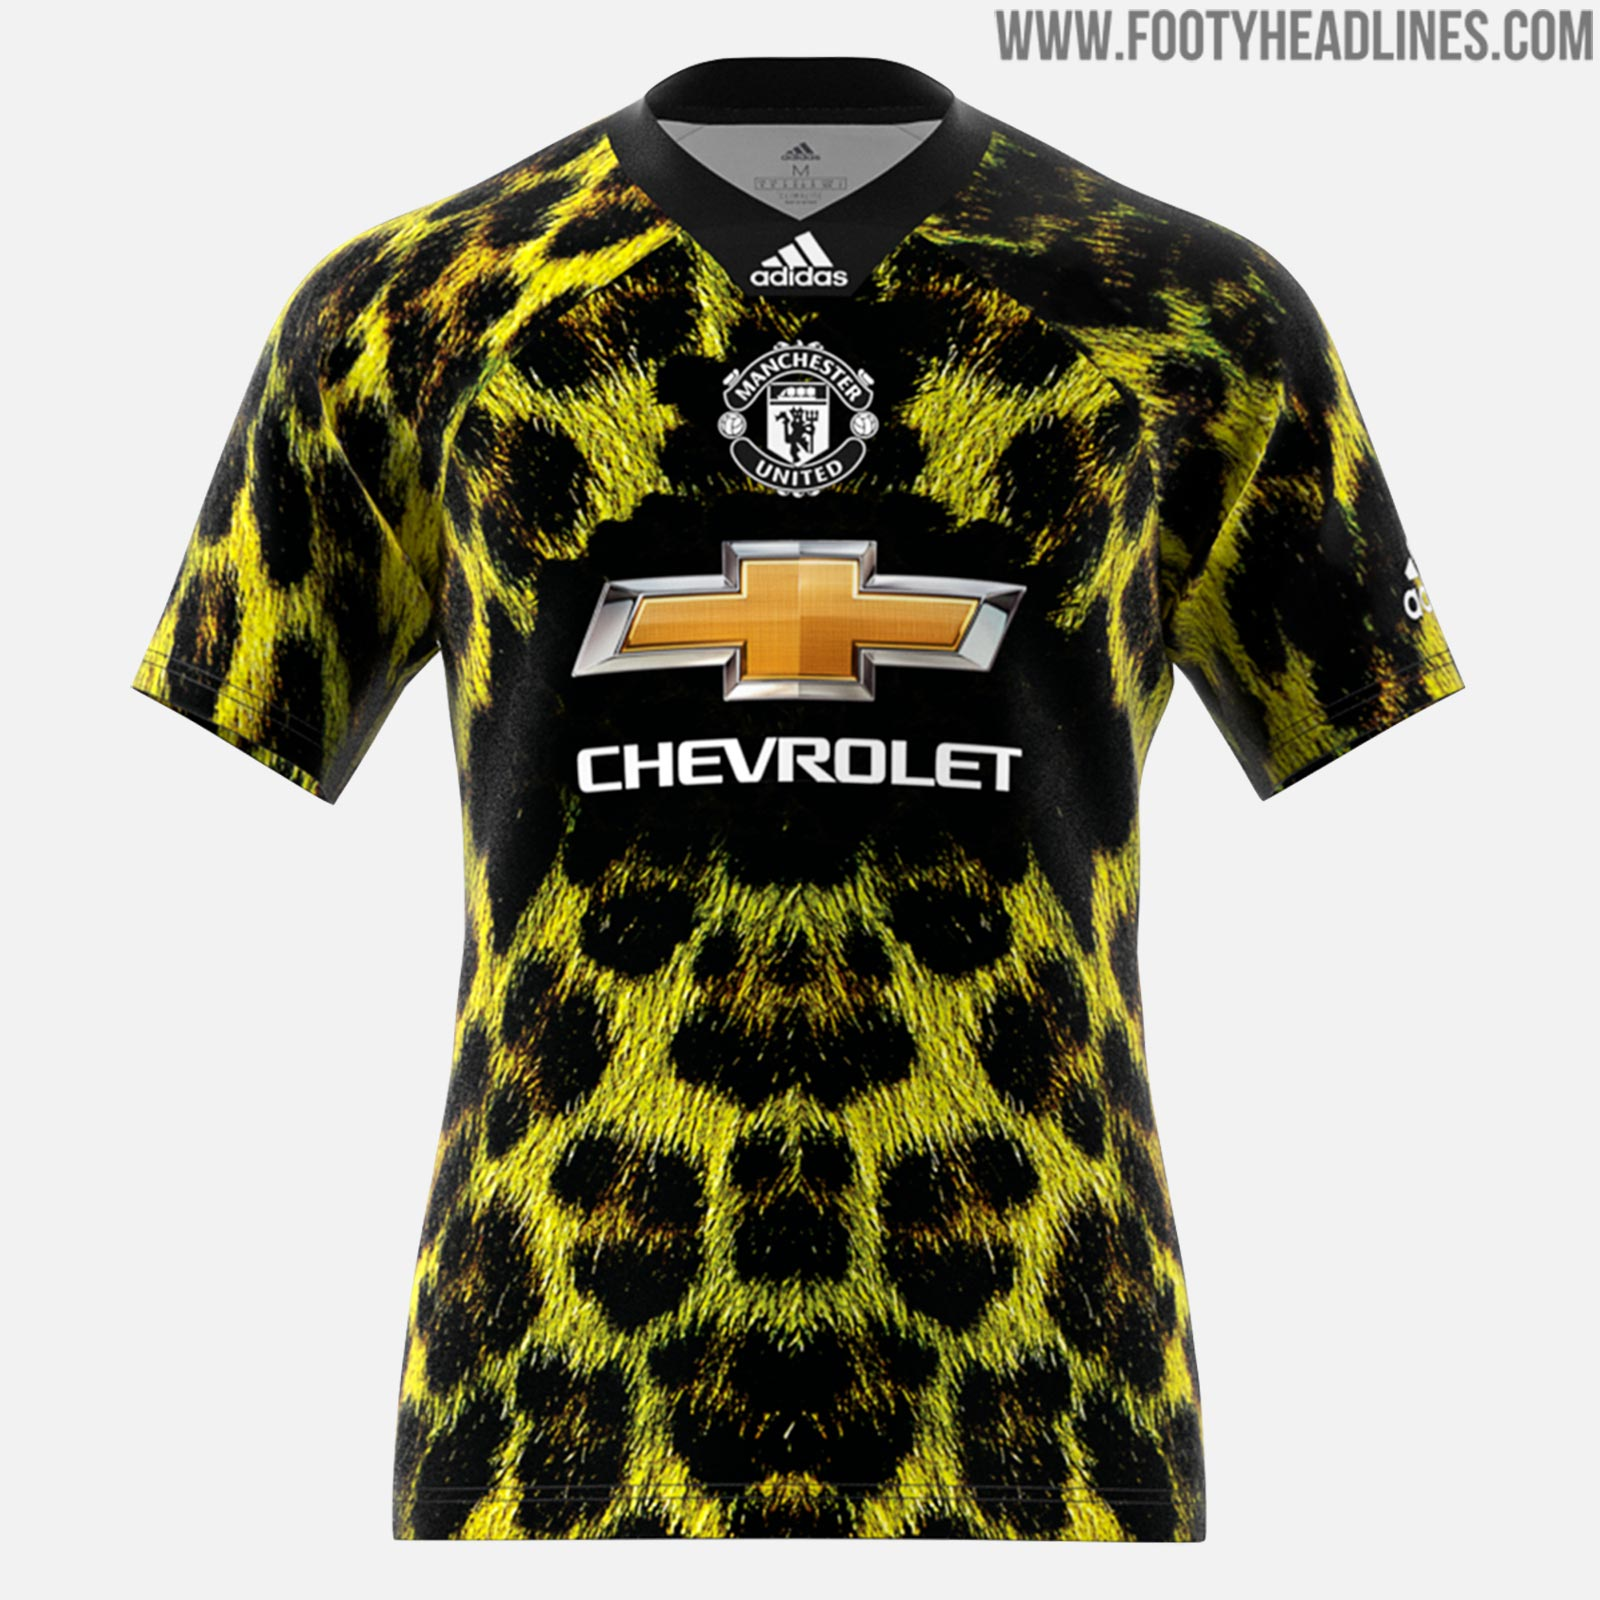 Adidas x EA Sports Manchester United Kit Released - Footy ...